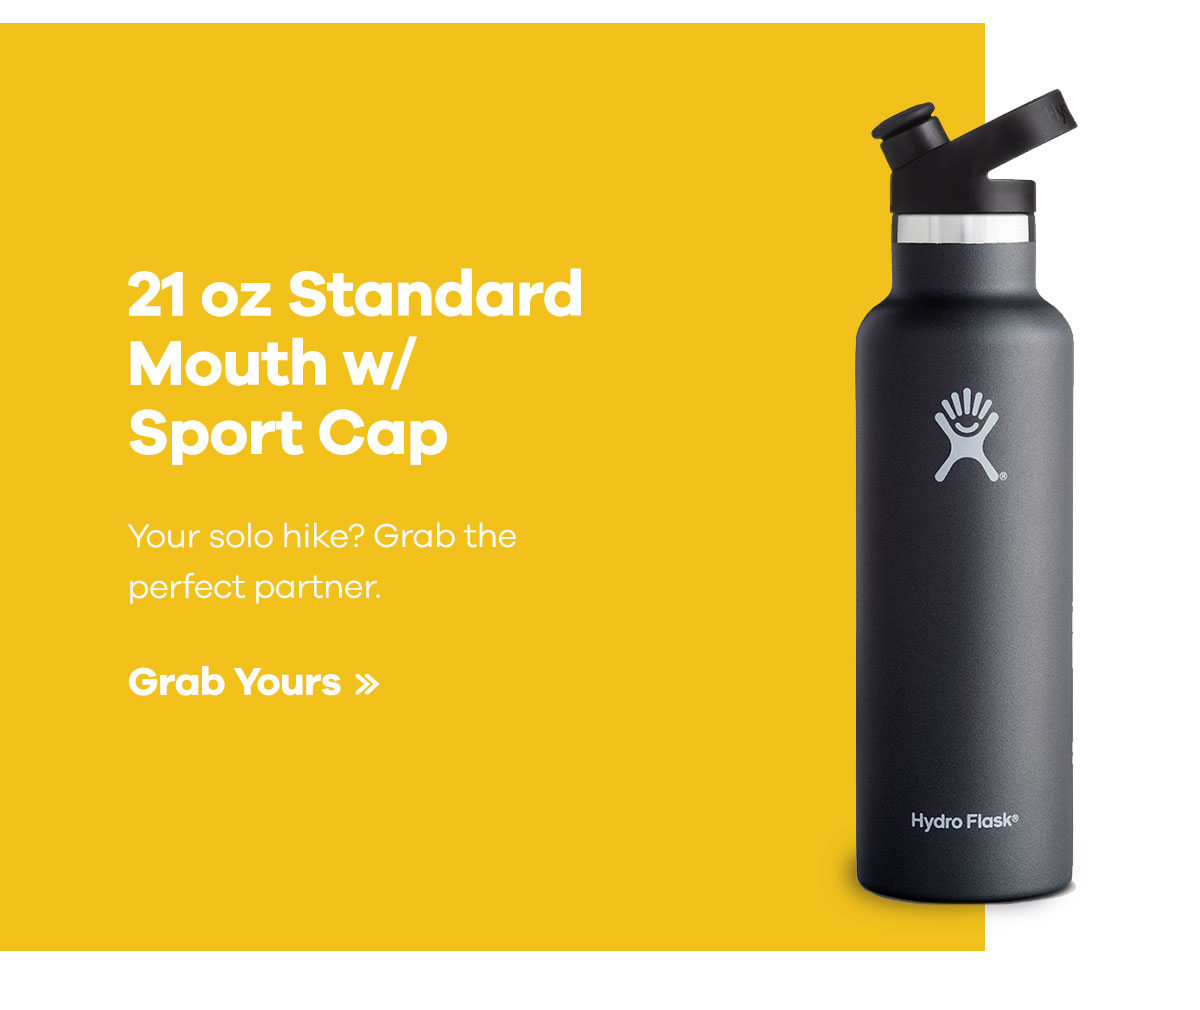 21 oz Standar Mouth w/ Sport Cap - Your solo hike? Grab the perfect partner. | Grab Yours >>